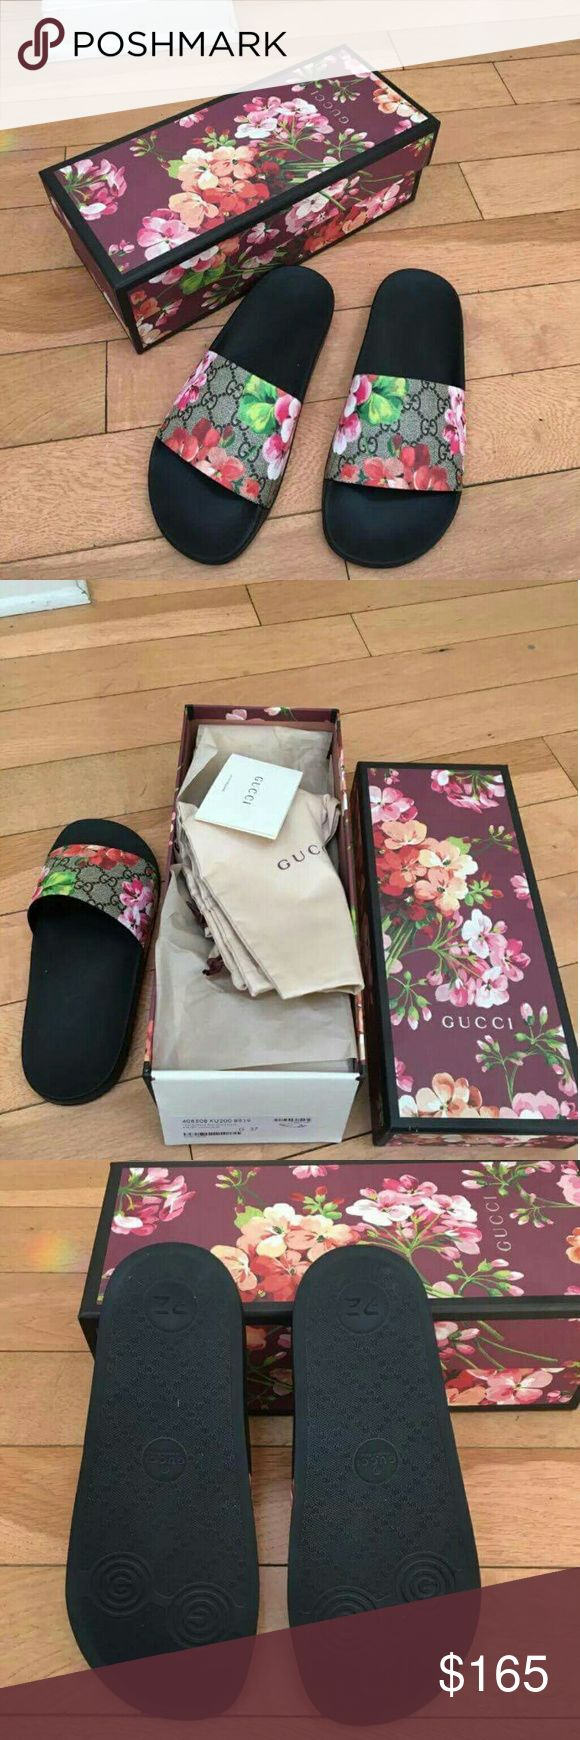 Gucci Blooms GG Supreme Slide Men&Women sizes Brand new 2017 Gucci Bloom slides men and women sizes Brand new 100% Authentic All original Boxing is Oncluded  with All Text 404-602-2558 for offers or deals Gucci Shoes Sandals & Flip-Flops